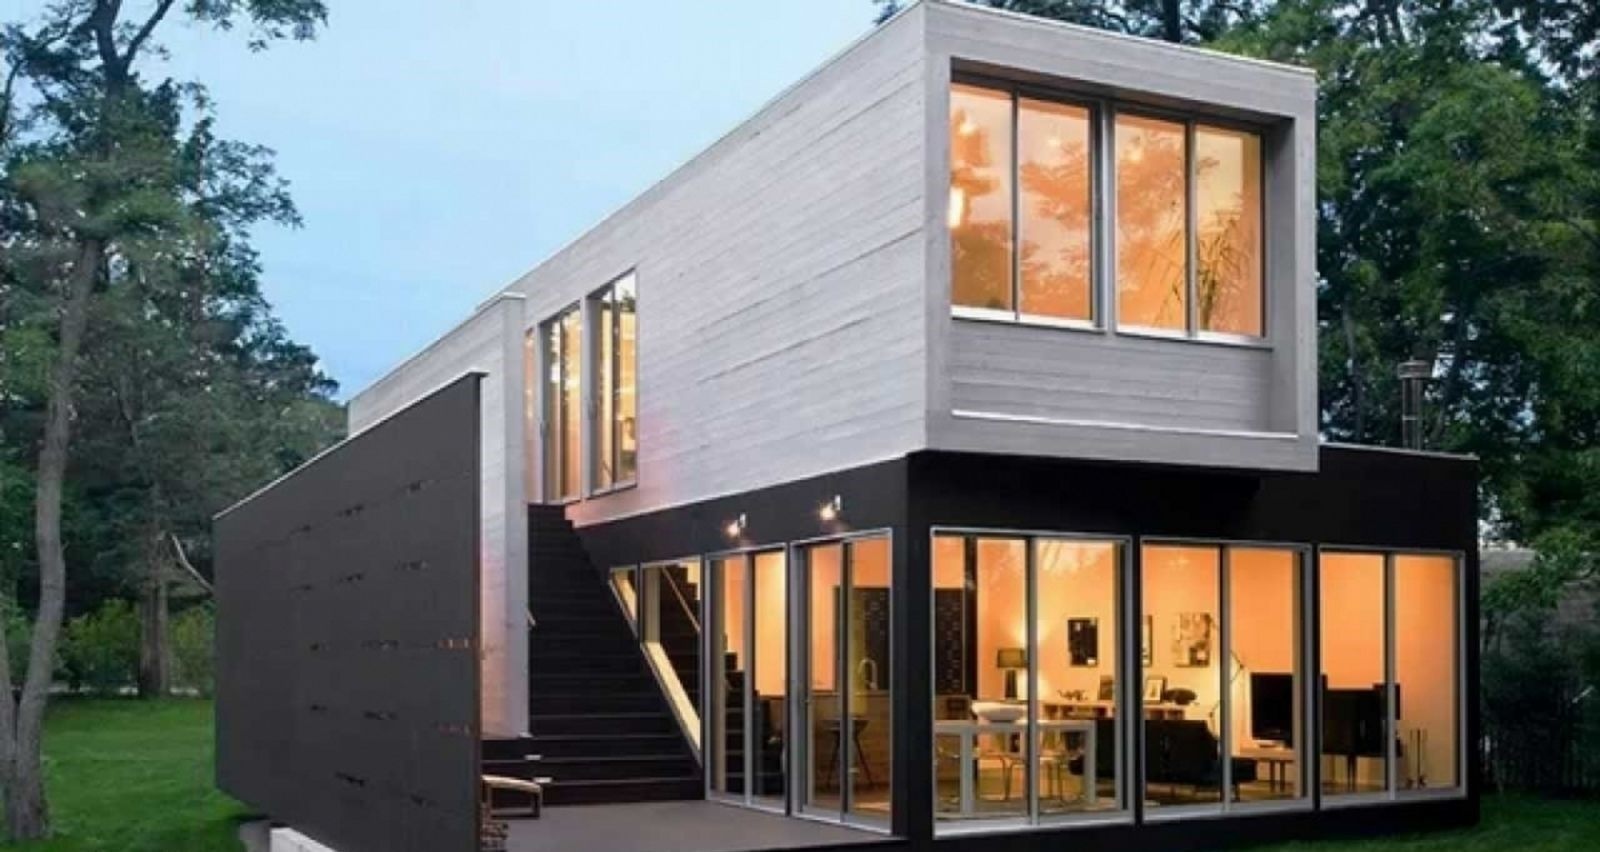 35 Awesome Tiny House Design Ideas With Luxury Concepts Teracee Shipping Container House Plans Container House Plans Container House Price